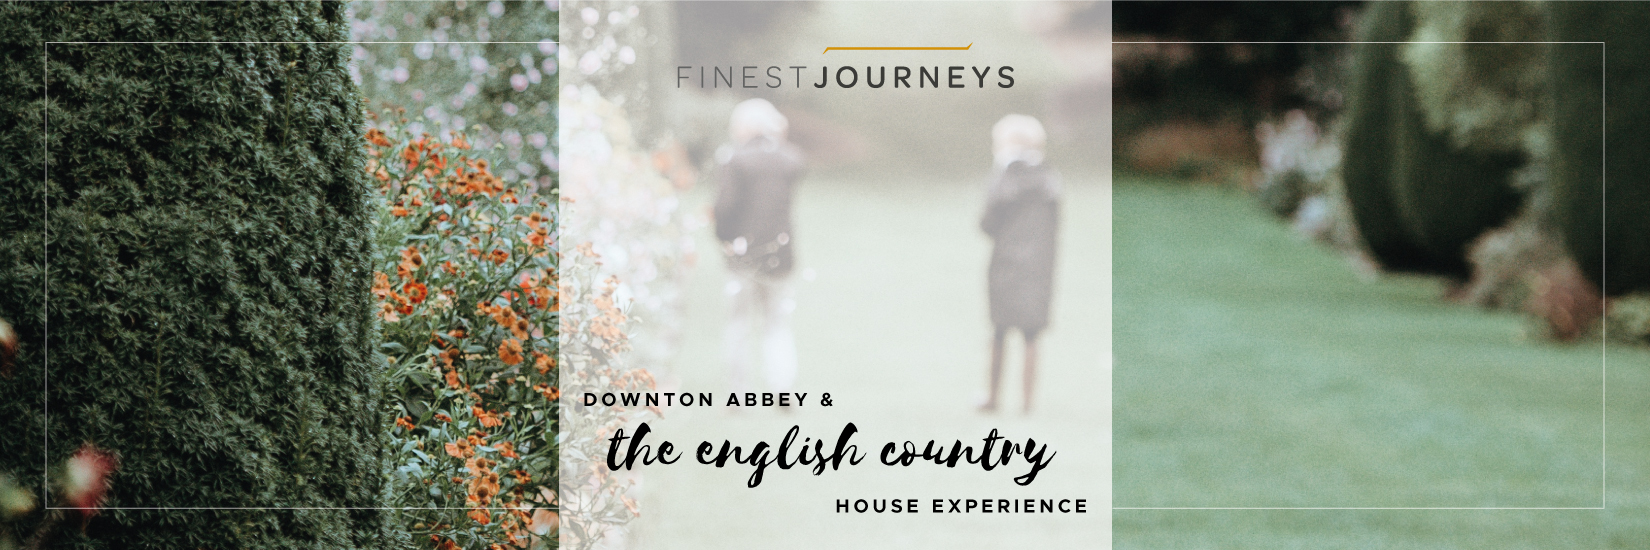 IMG : Downton Abbey and the English Country House Experience